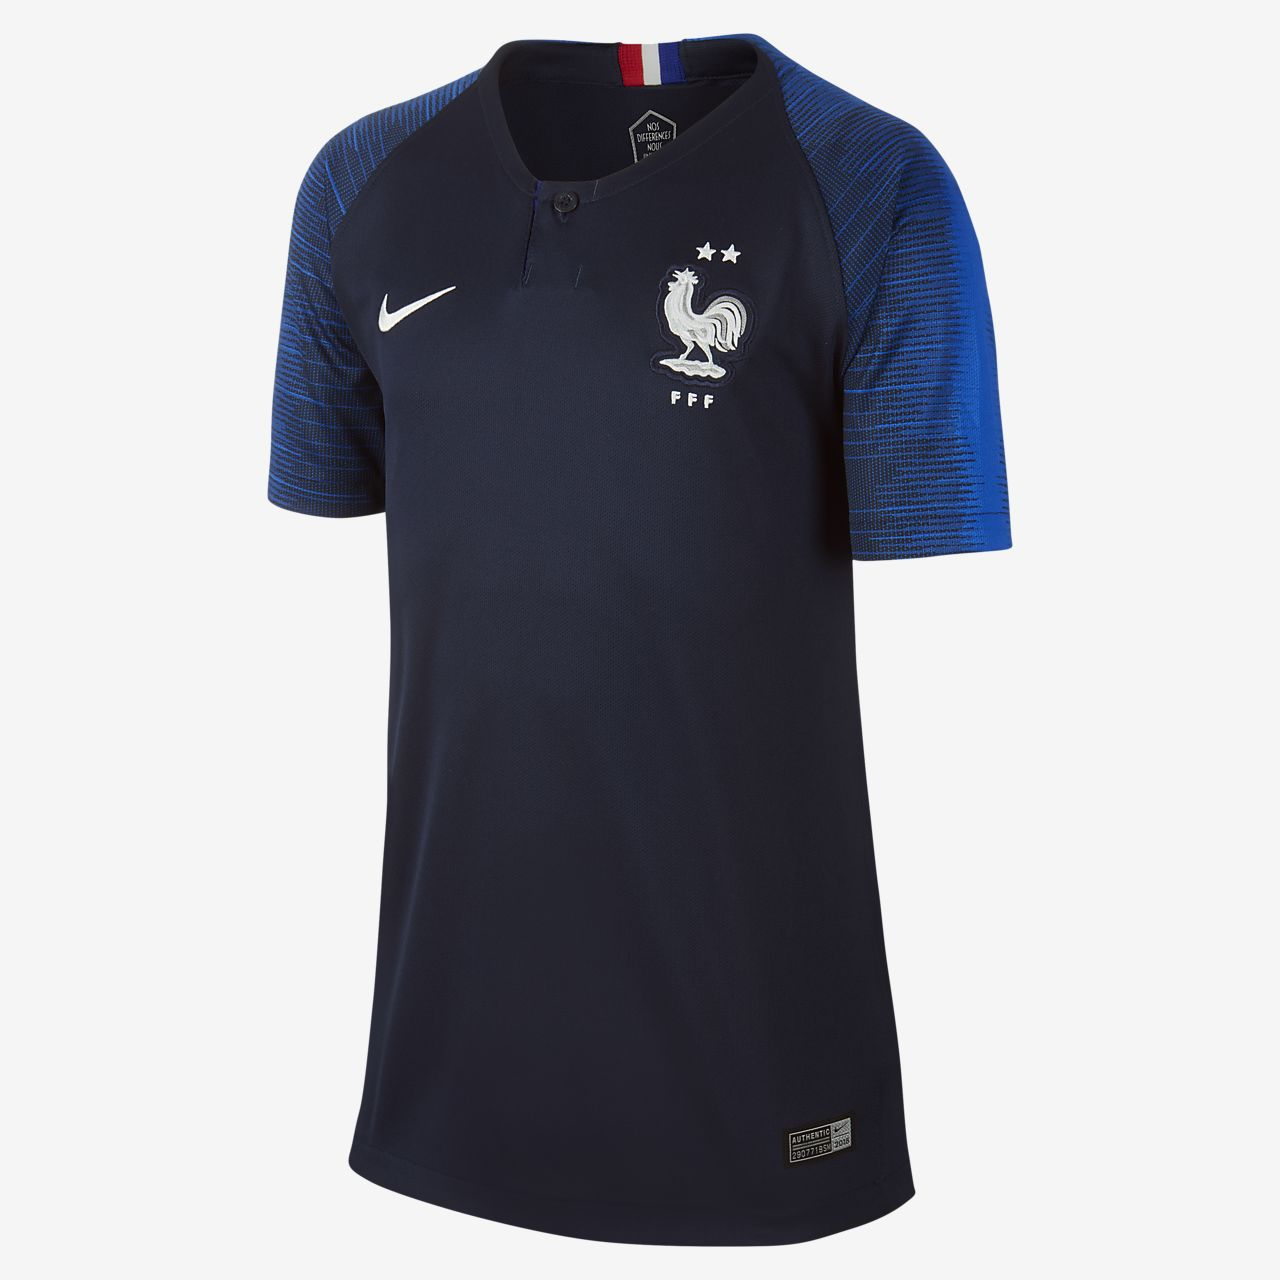 2018 FFF Stadium Home Older Kids' Football Shirt